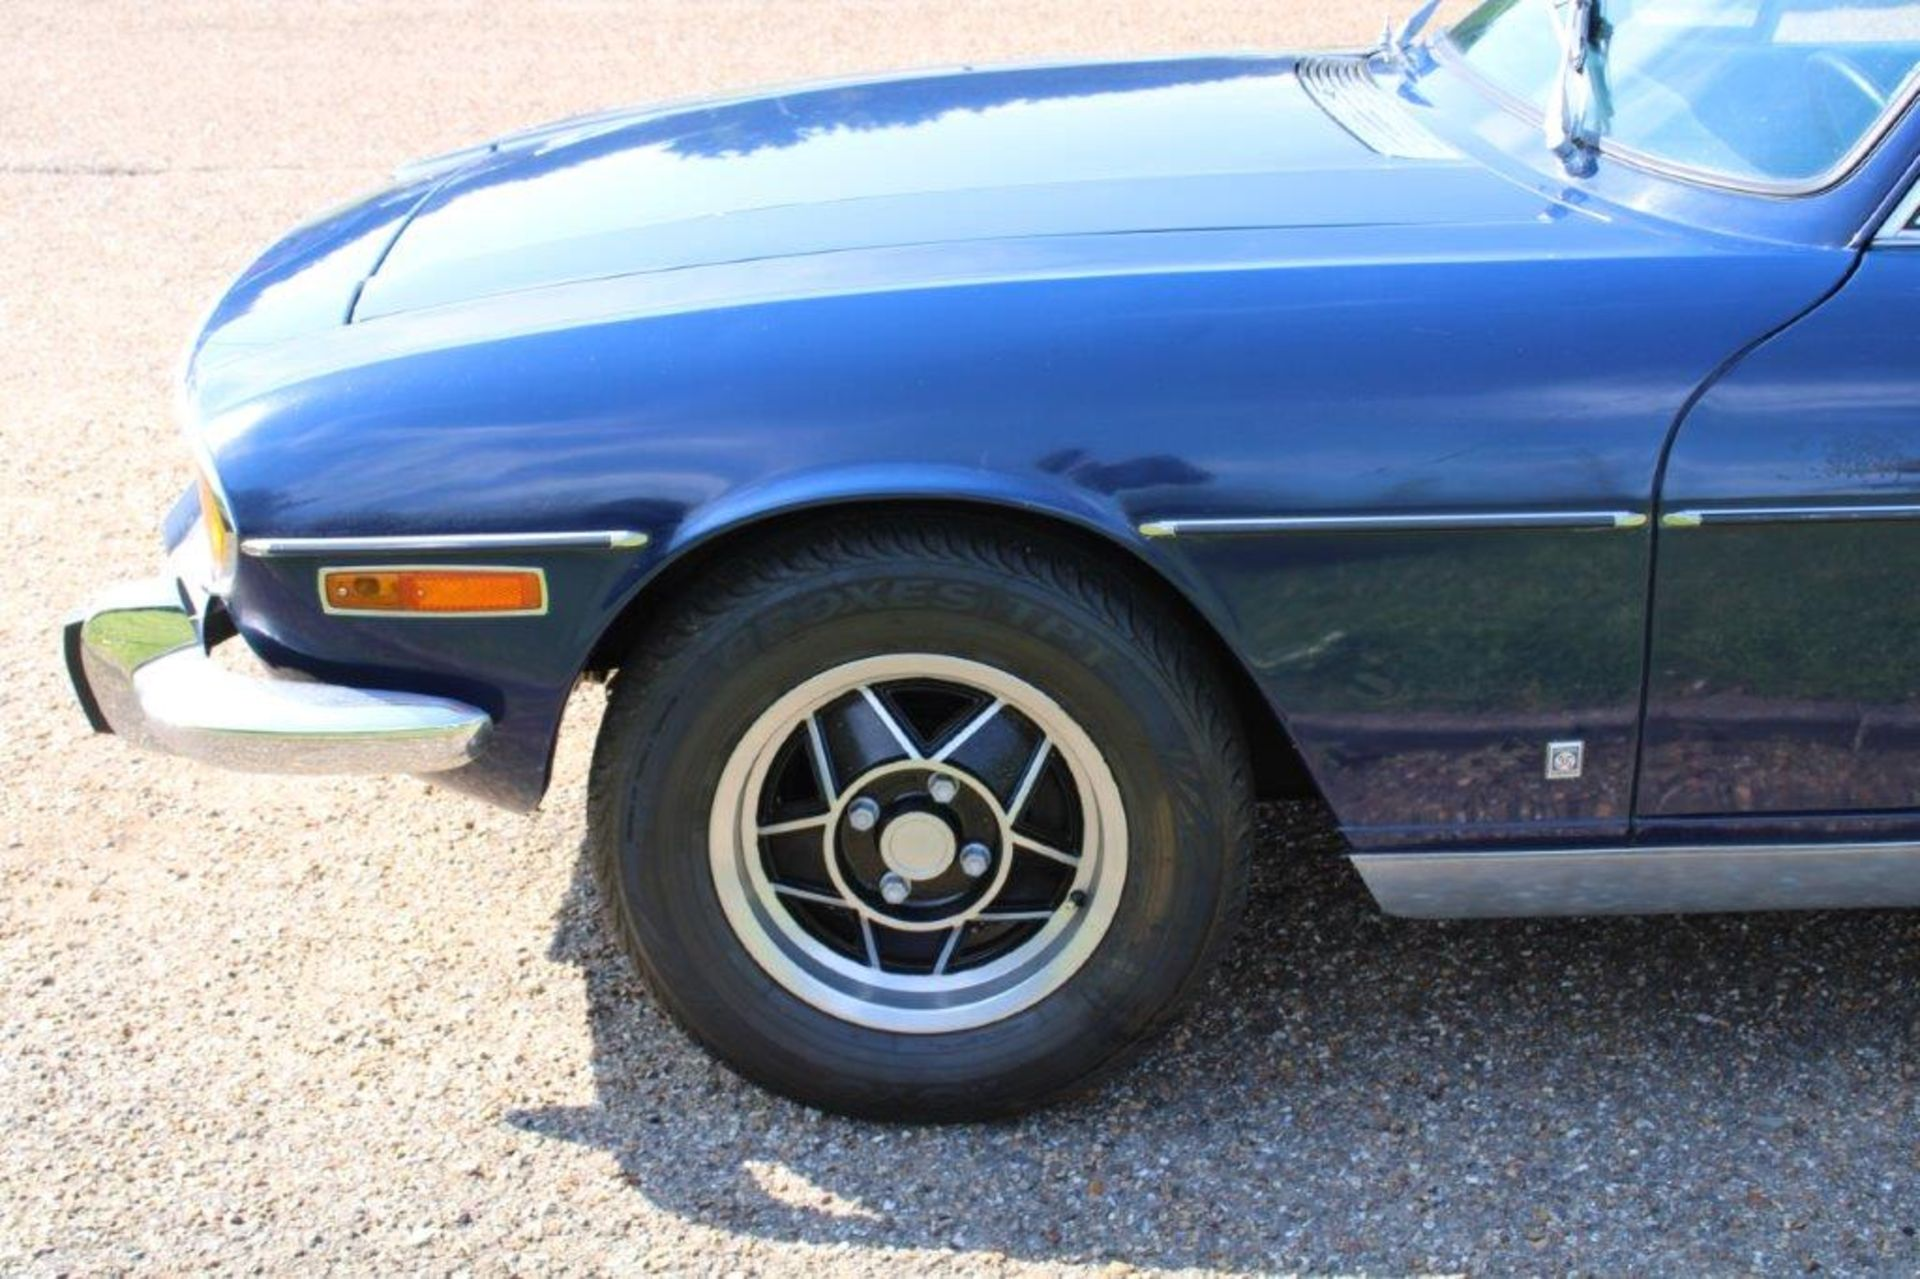 1973 Triumph Stag 3.0 LHD - Image 4 of 28